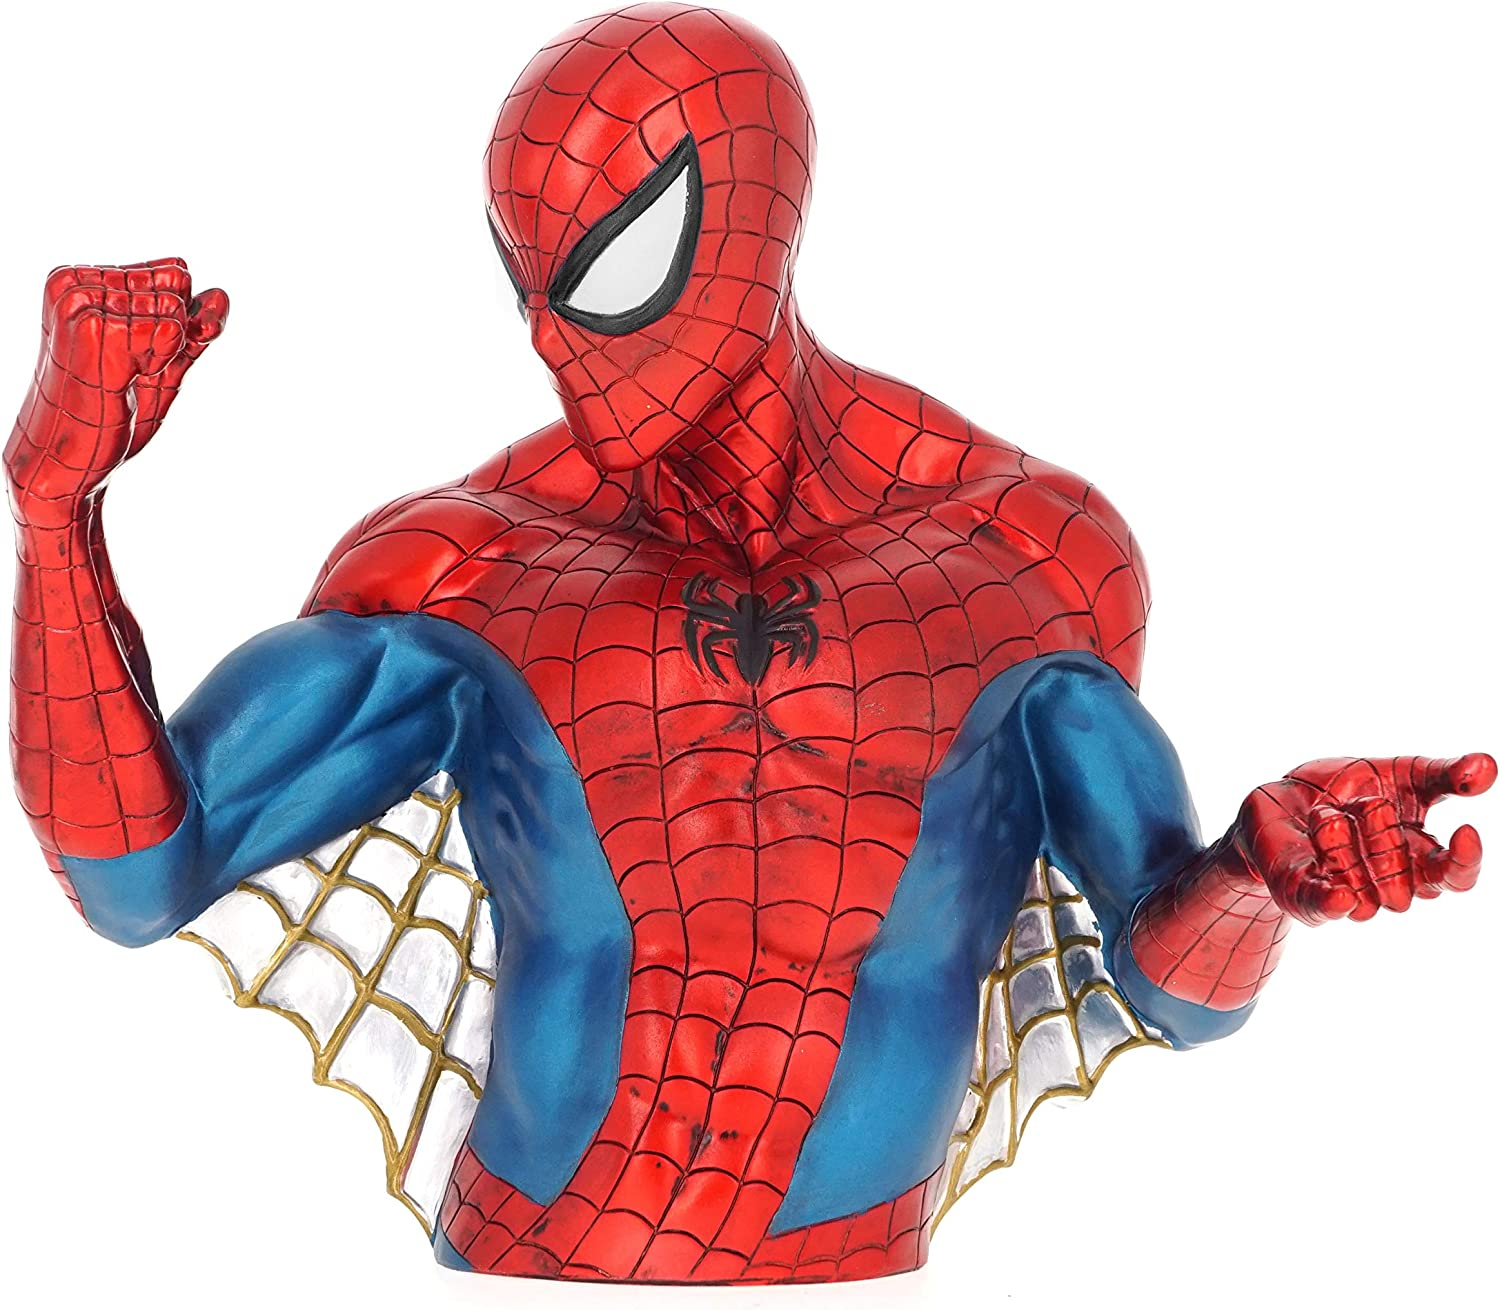 Marvel Spiderman Bust Coin Bank 3D Jouet Figurine Tirelire PVC